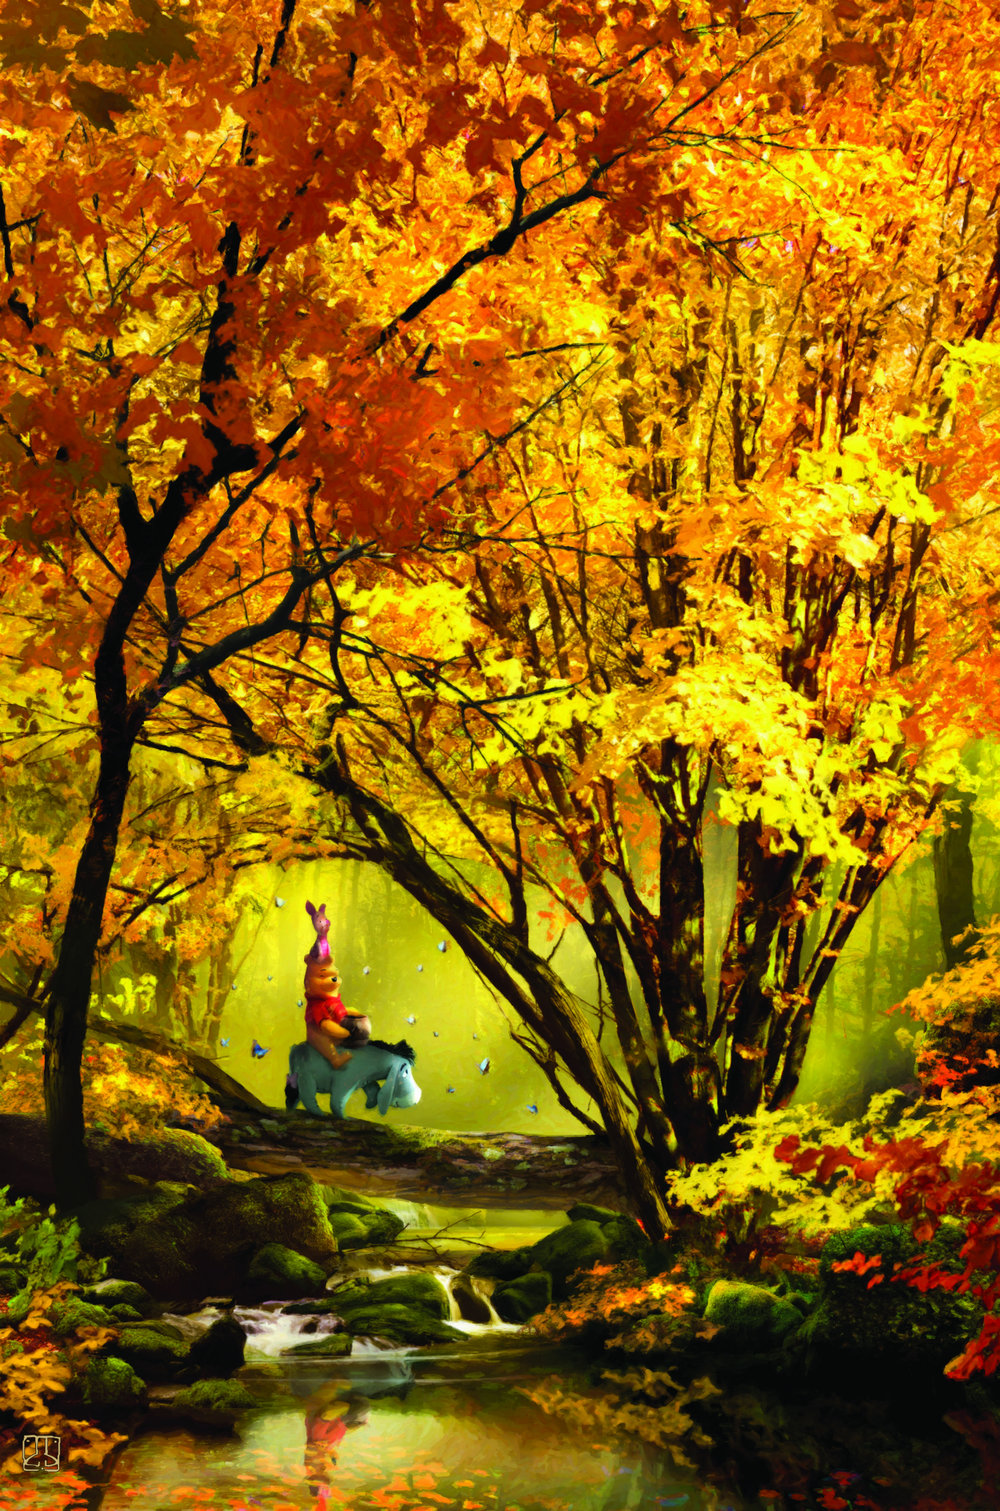 A Ride in the Golden Forest -